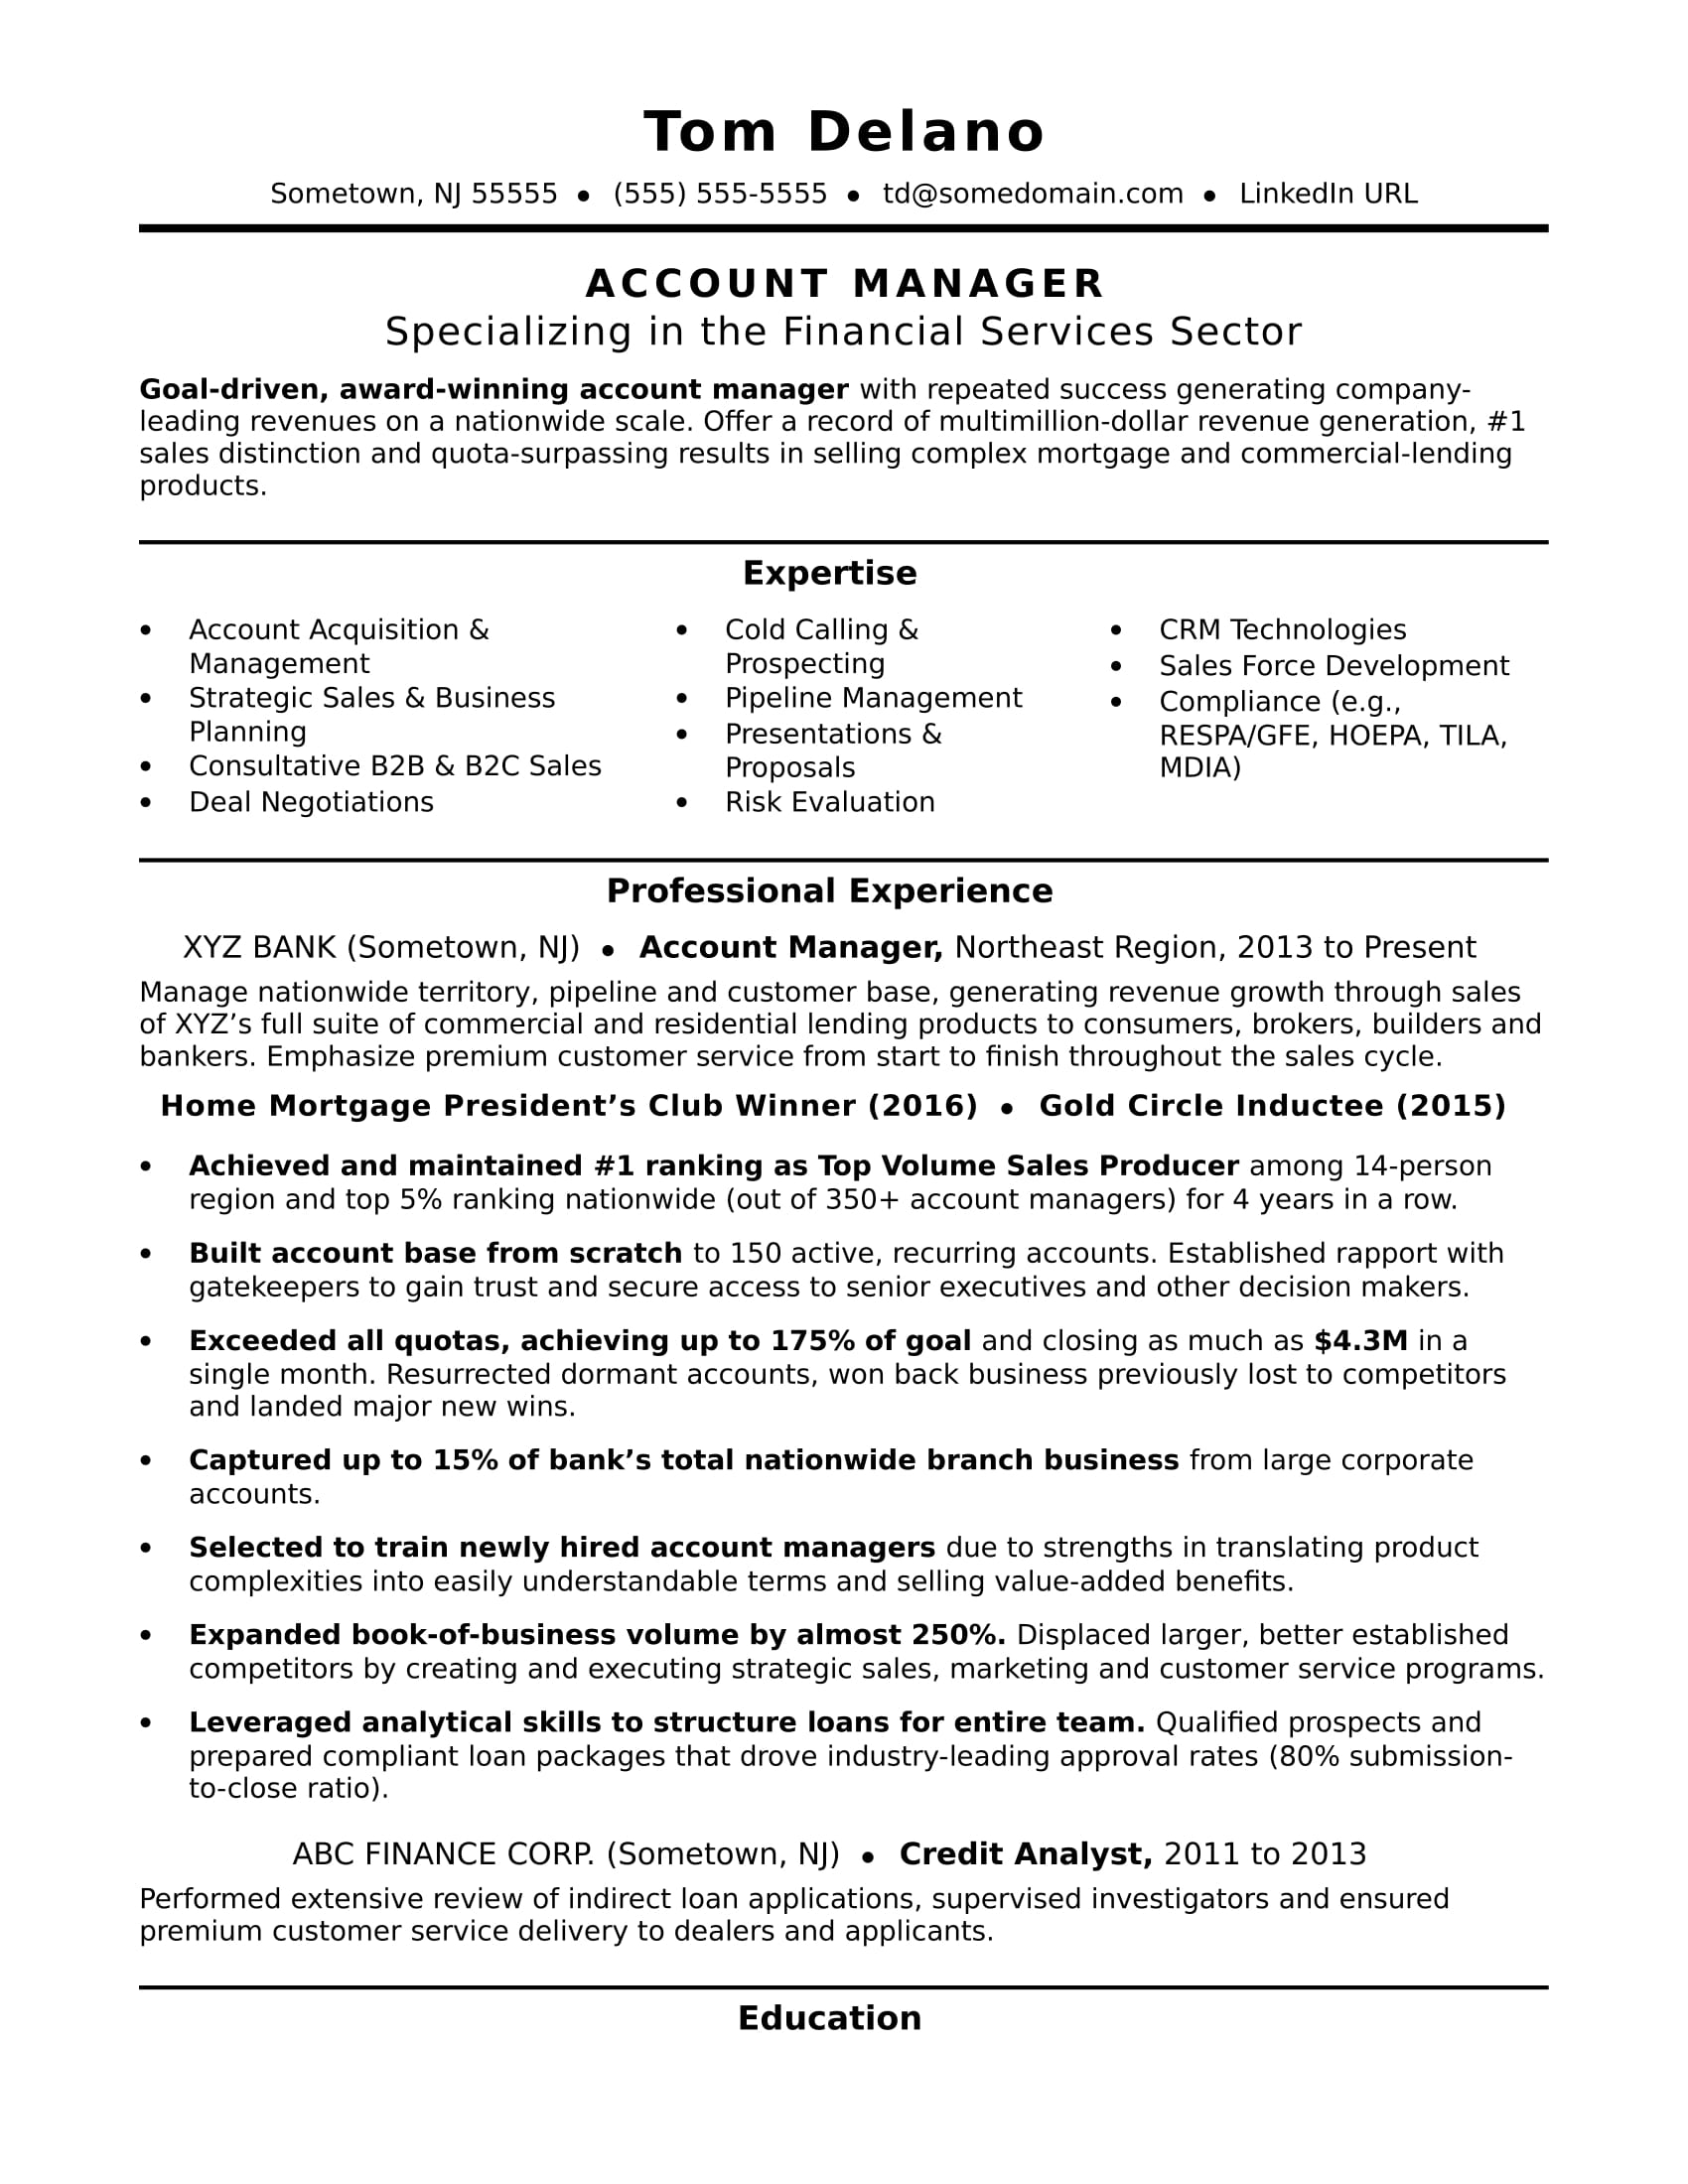 account manager resume sample - Resume Example For Jobs